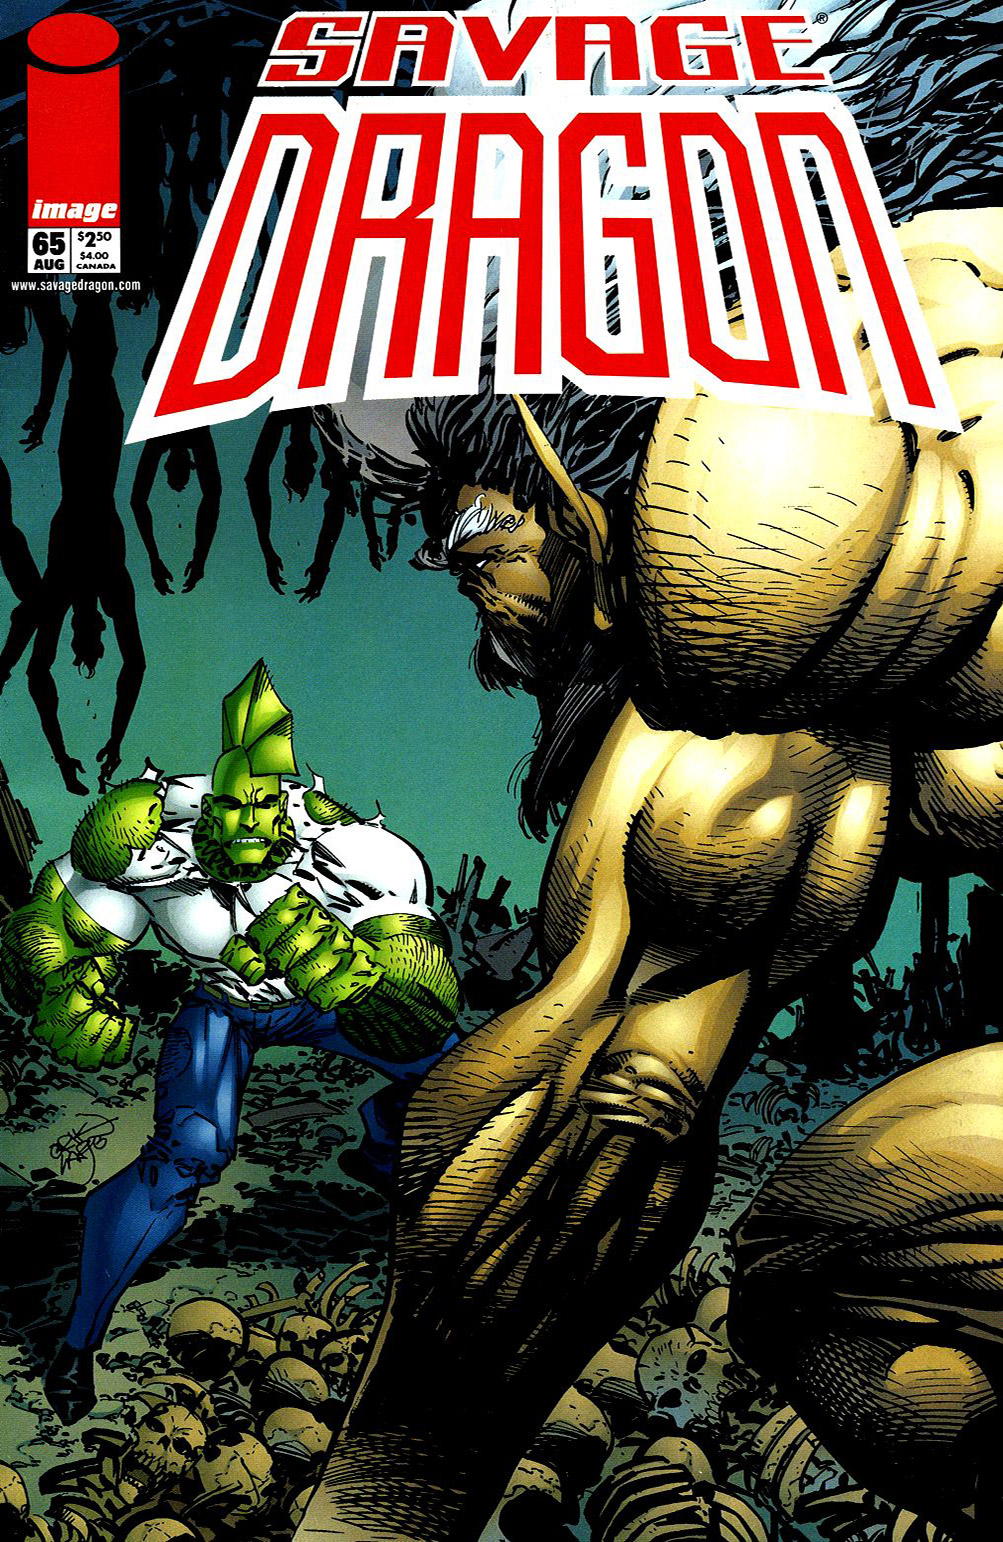 Cover Savage Dragon Vol.2 #65